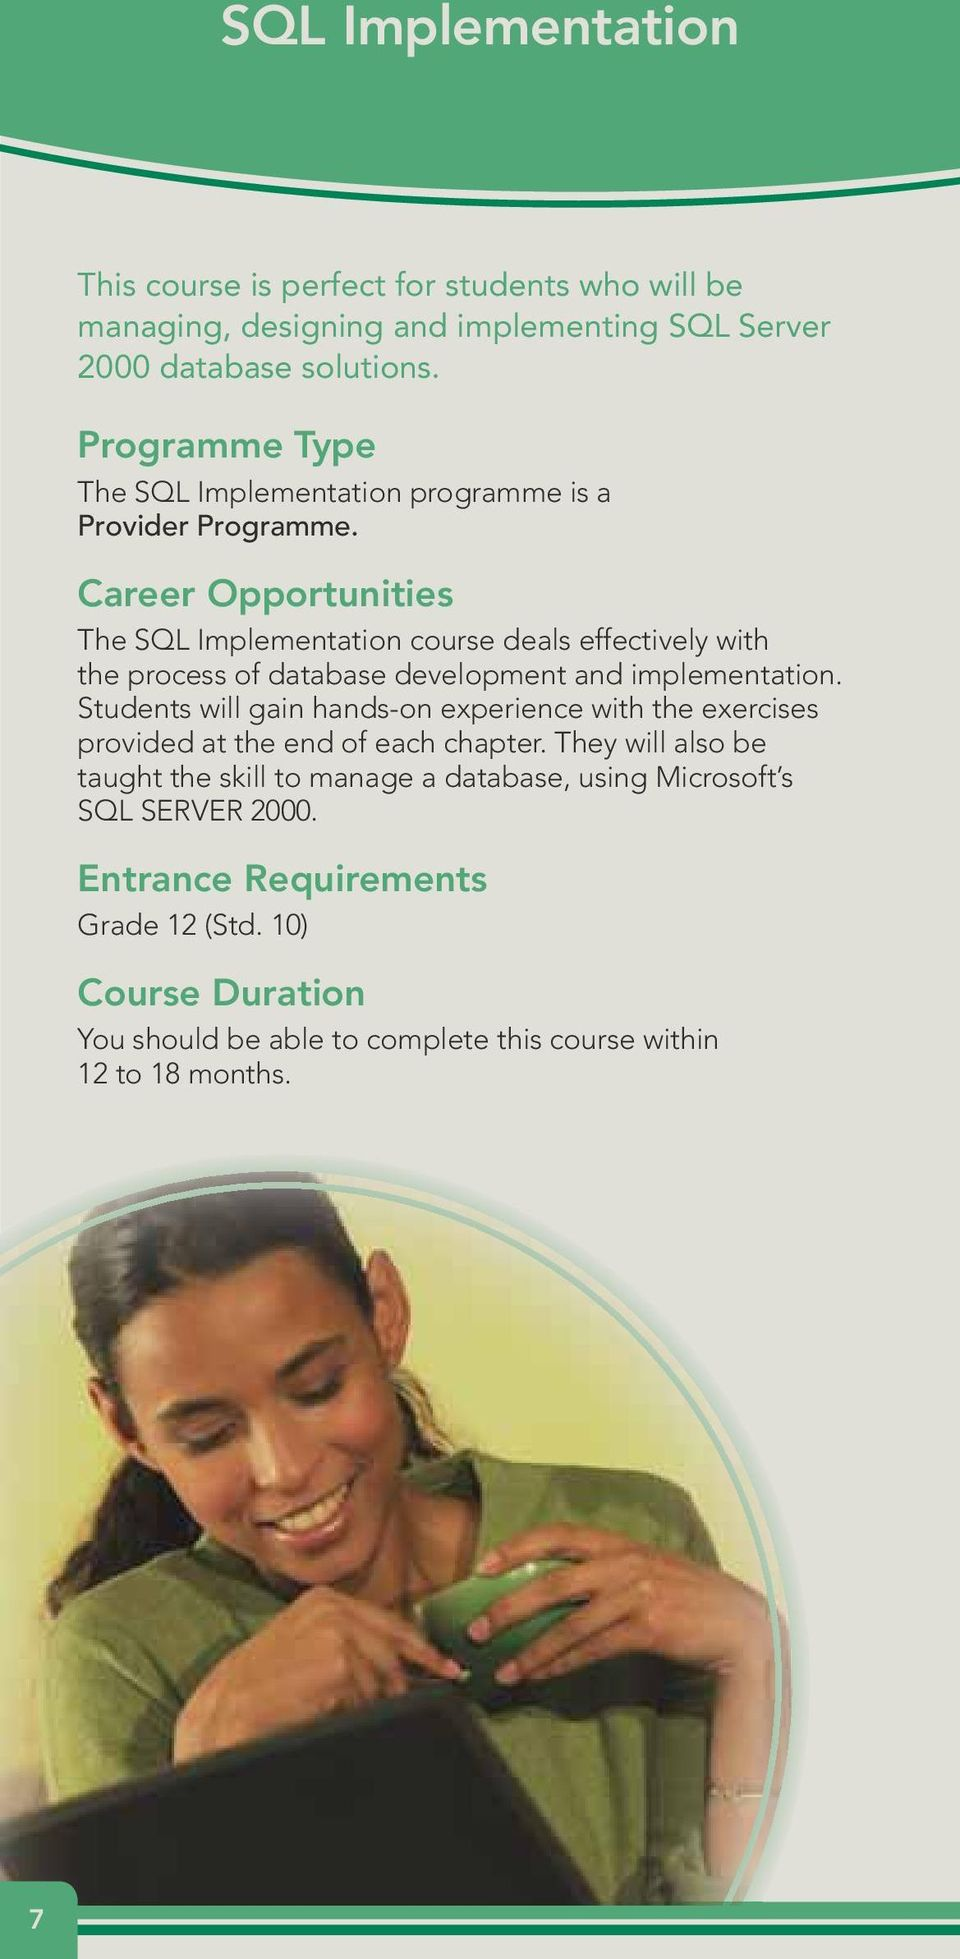 Career Opportunities The SQL Implementation course deals effectively with the process of database development and implementation.